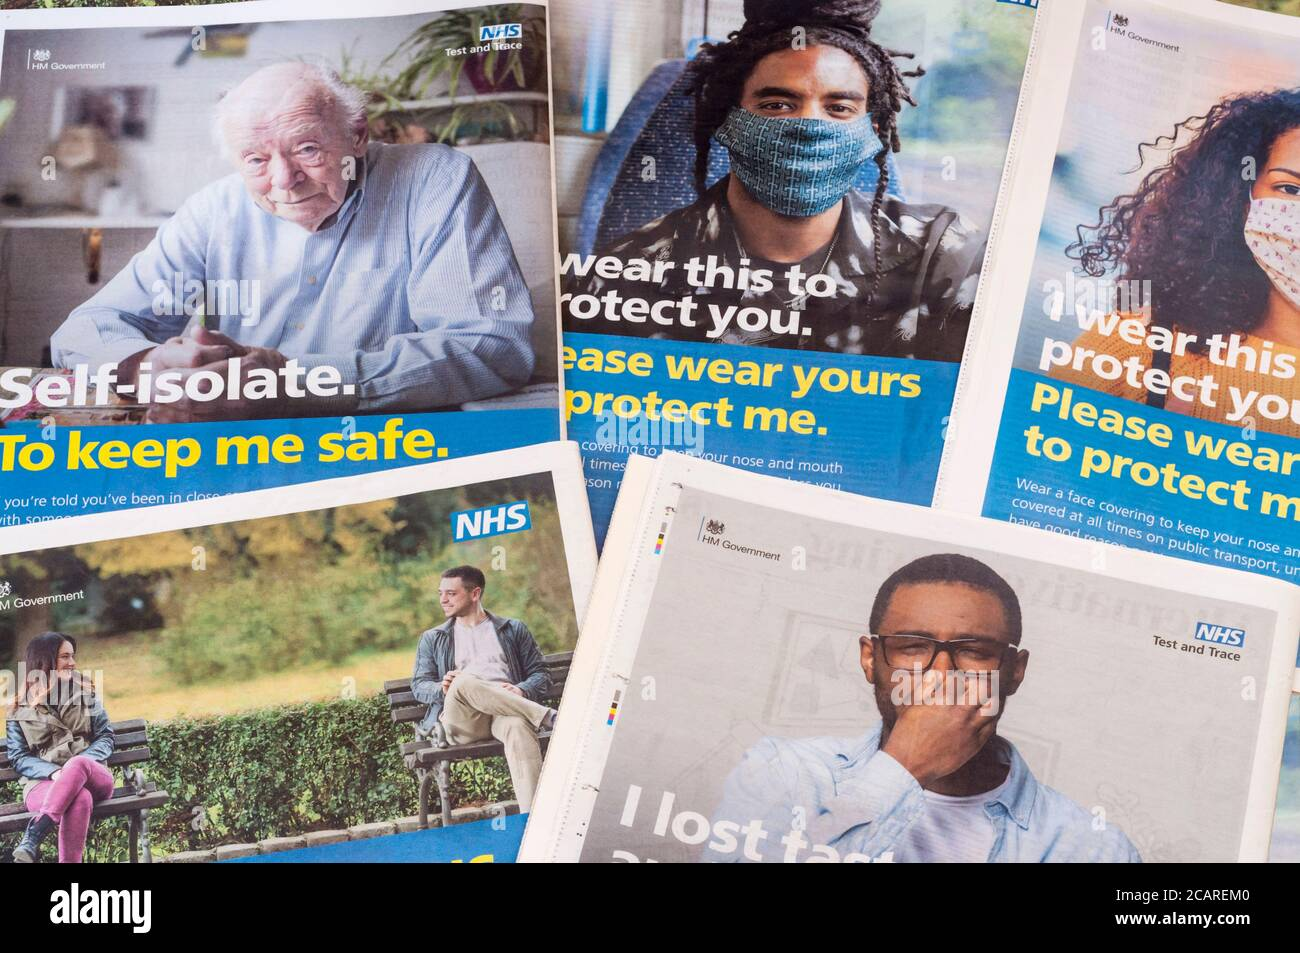 A selection of UK government NHS advertisements promoting a variety of coronavirus COVID-19 safety precautions during the 2020 pandemic. Stock Photo